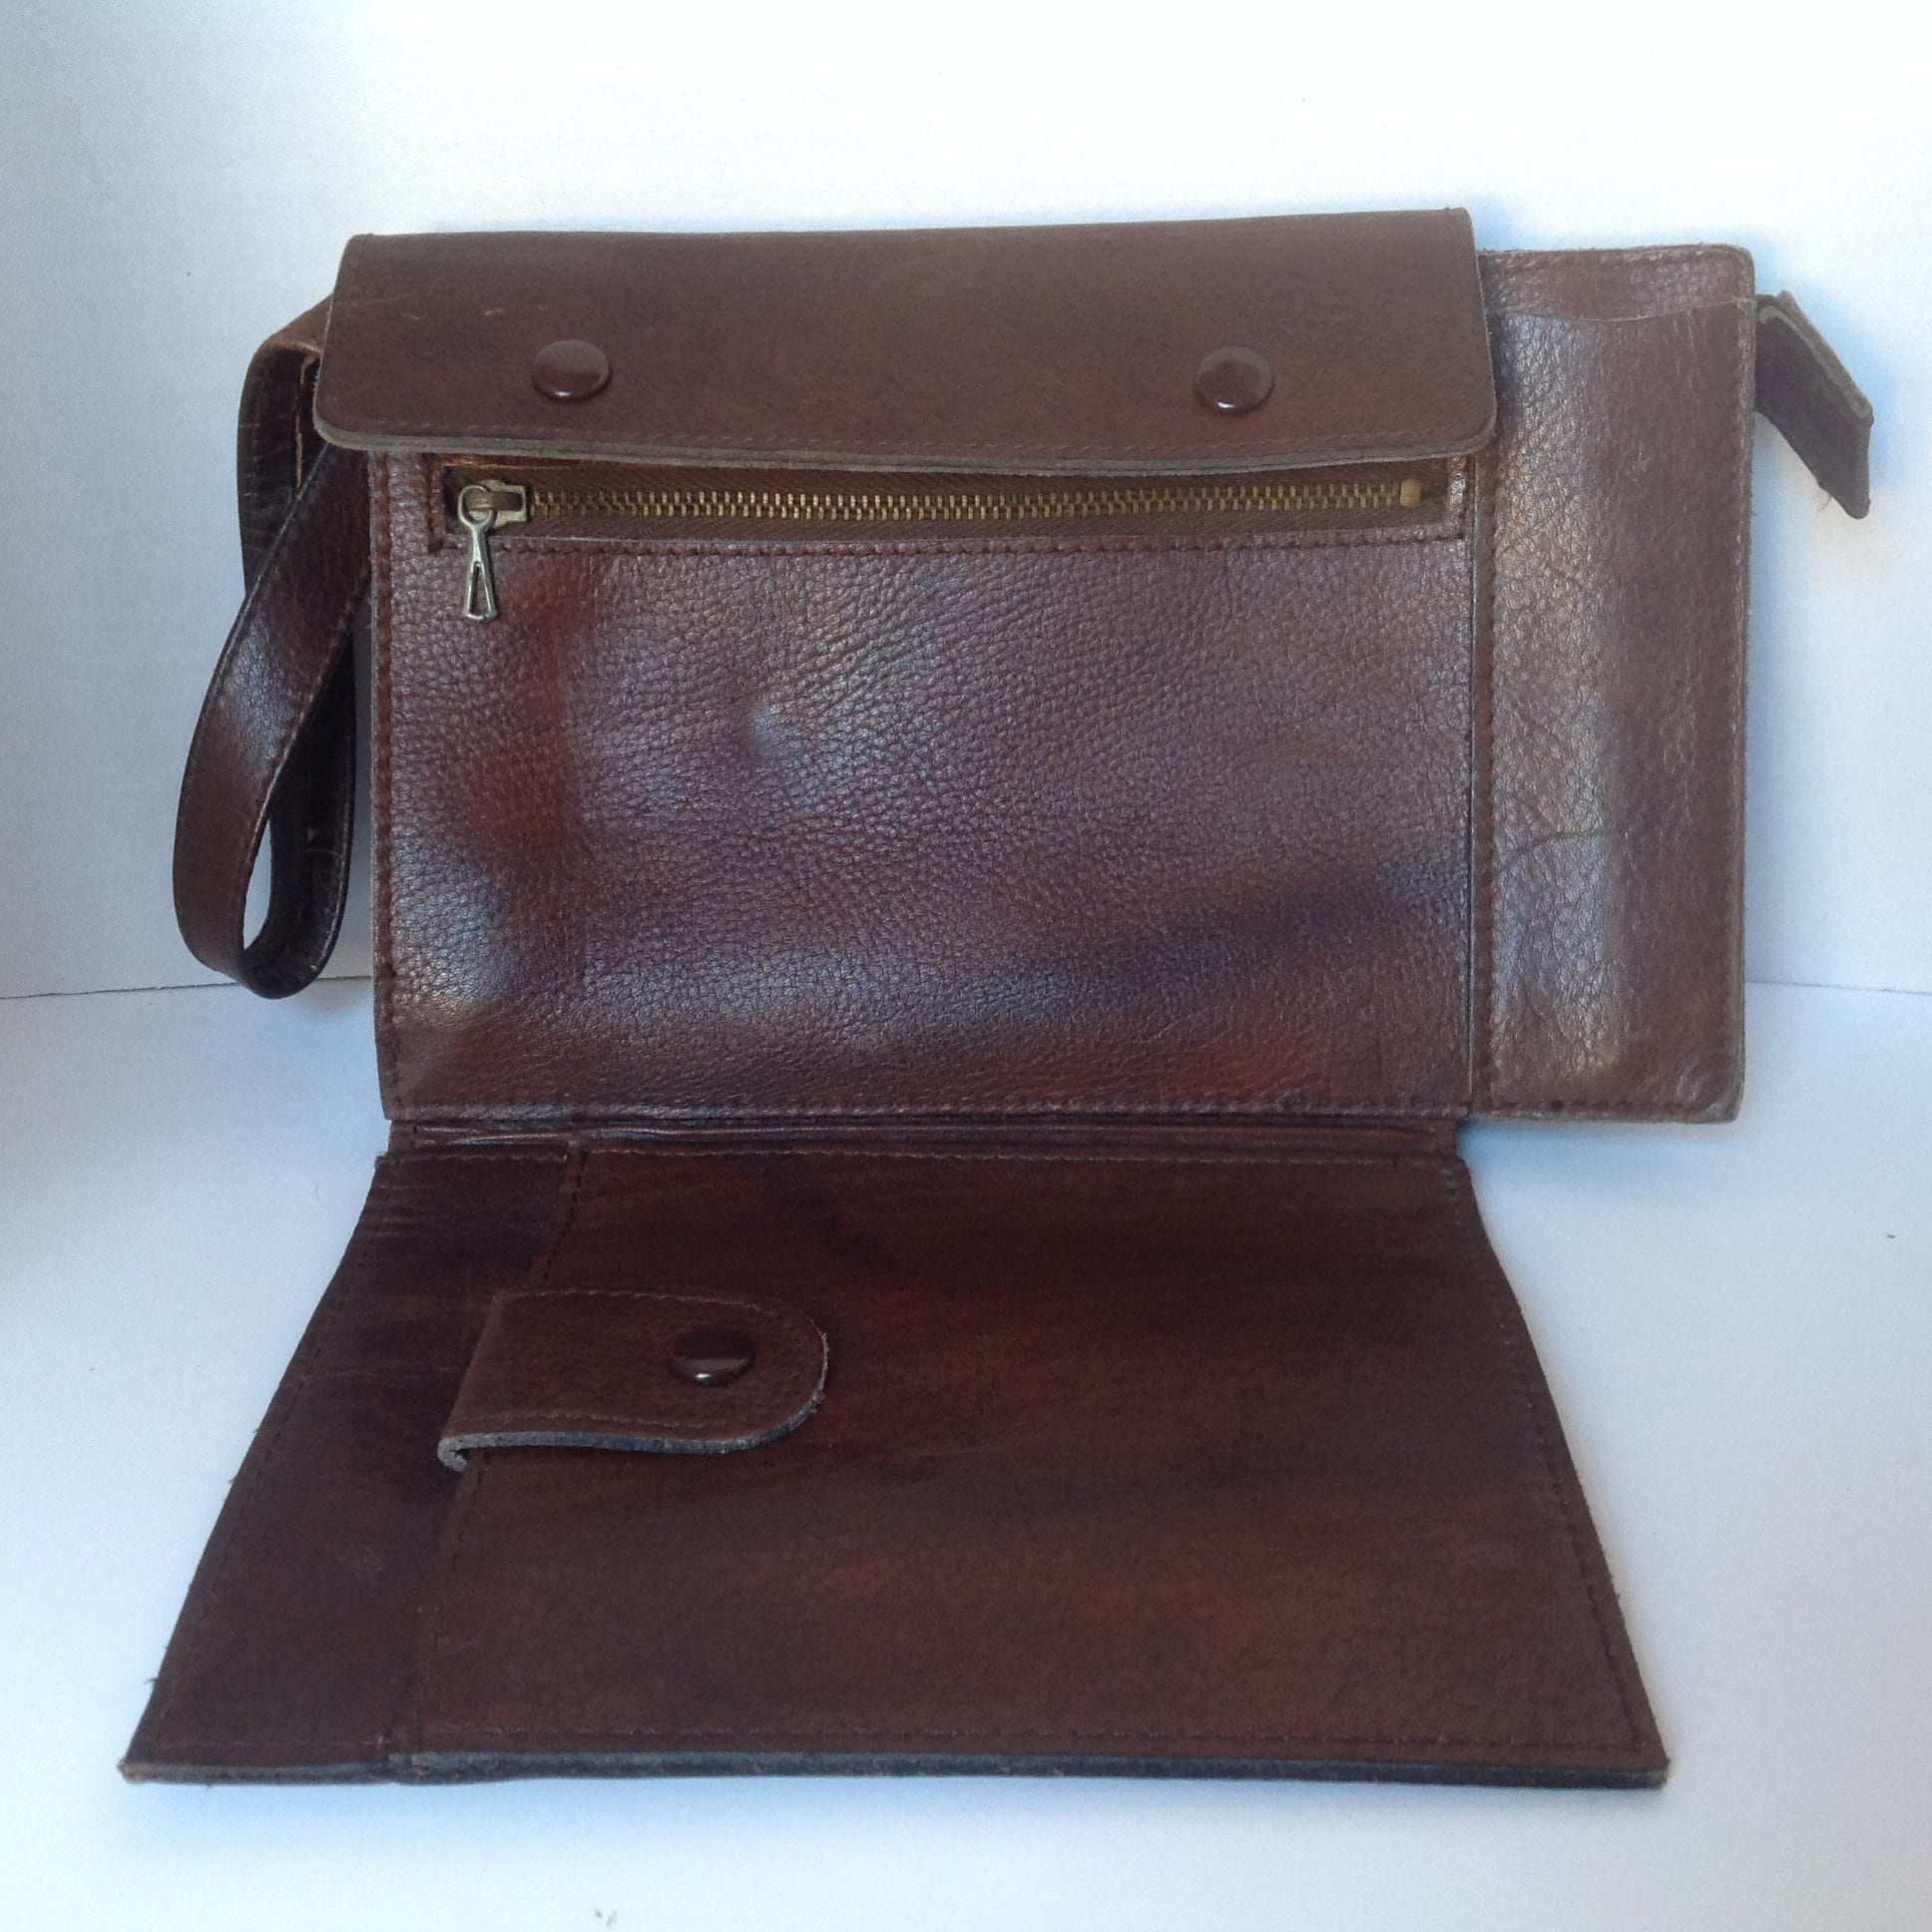 ed8d9e92a9 vintage leather wristlet leather organizer cell phone